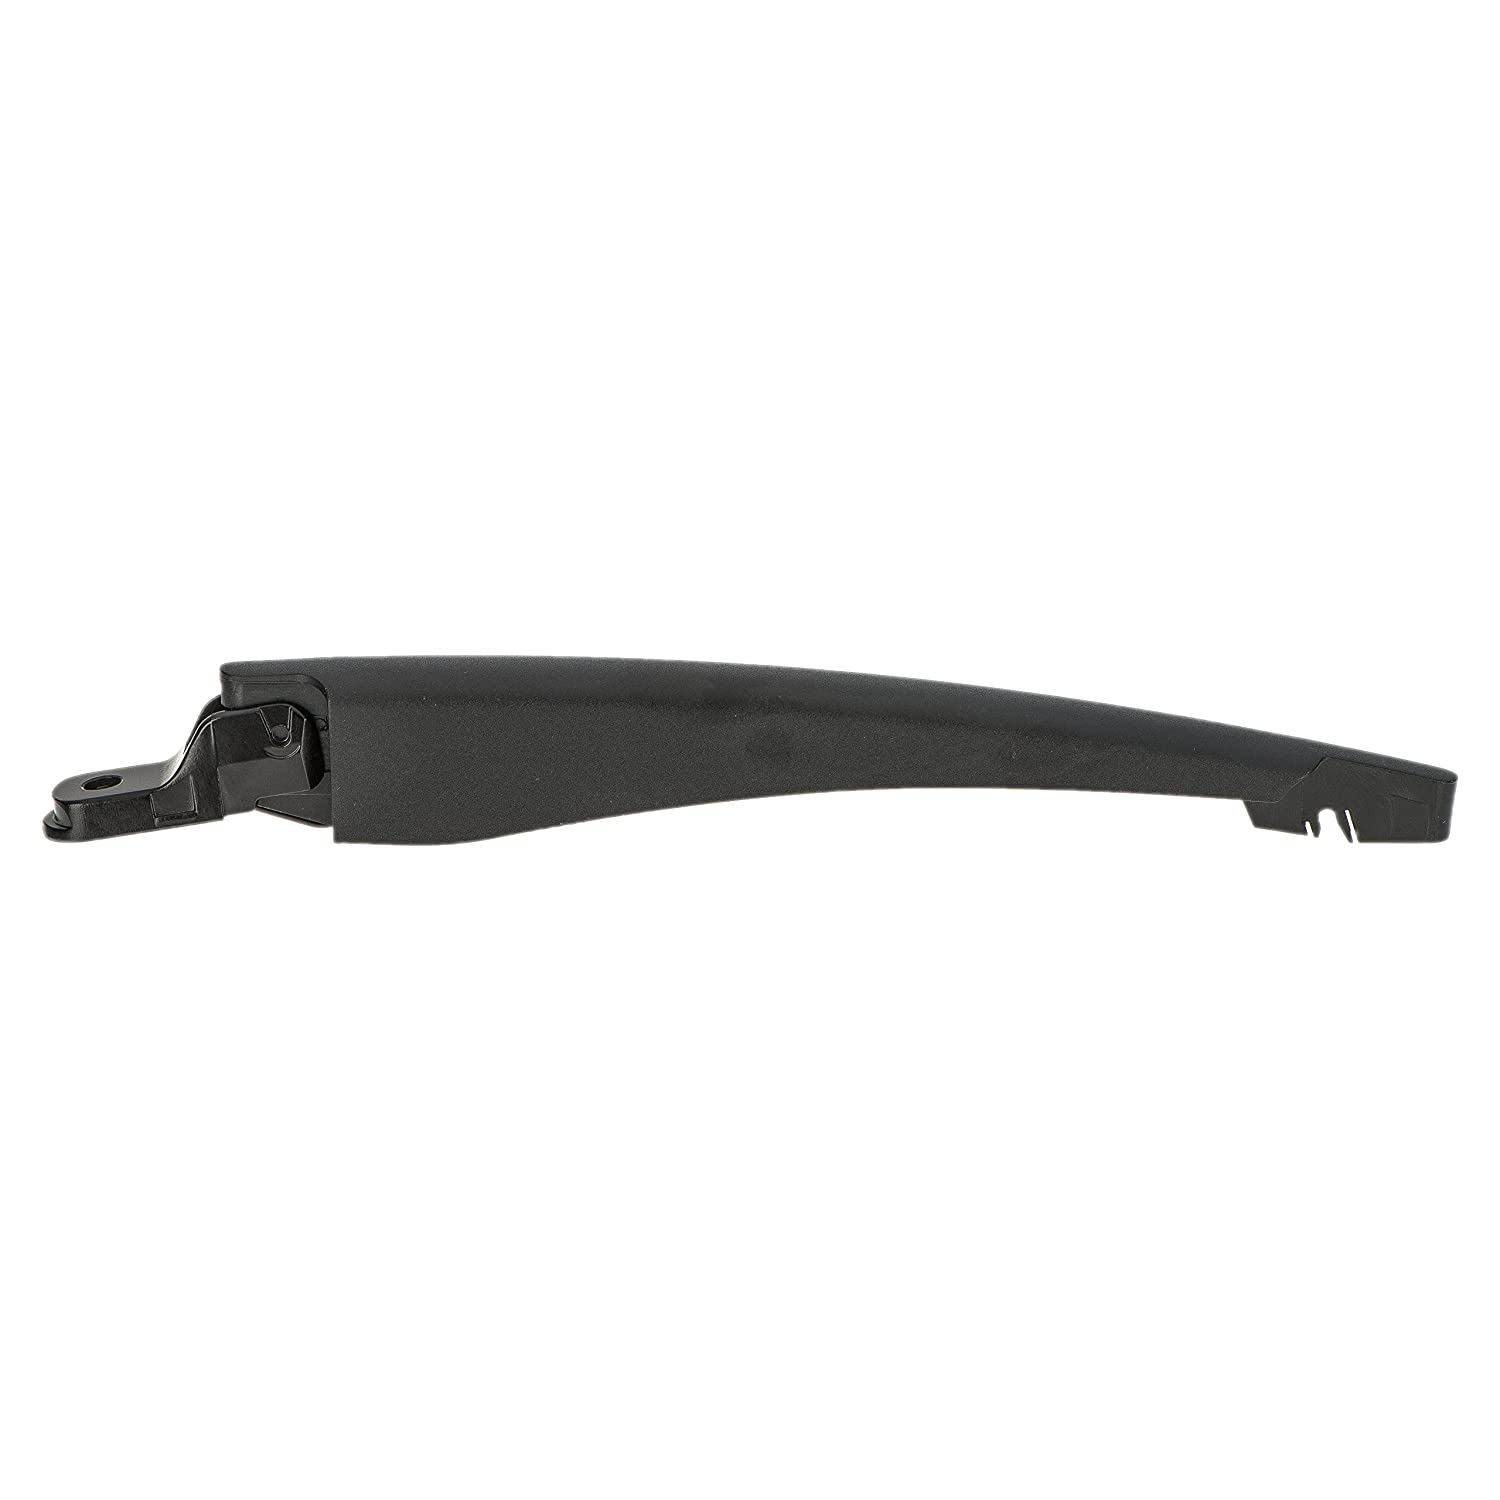 Amazon.com: OEM NEW Rear Window WIper Blade Arm 2007-2014 Ford Edge Lincoln MKX 9T4Z17526A: Automotive